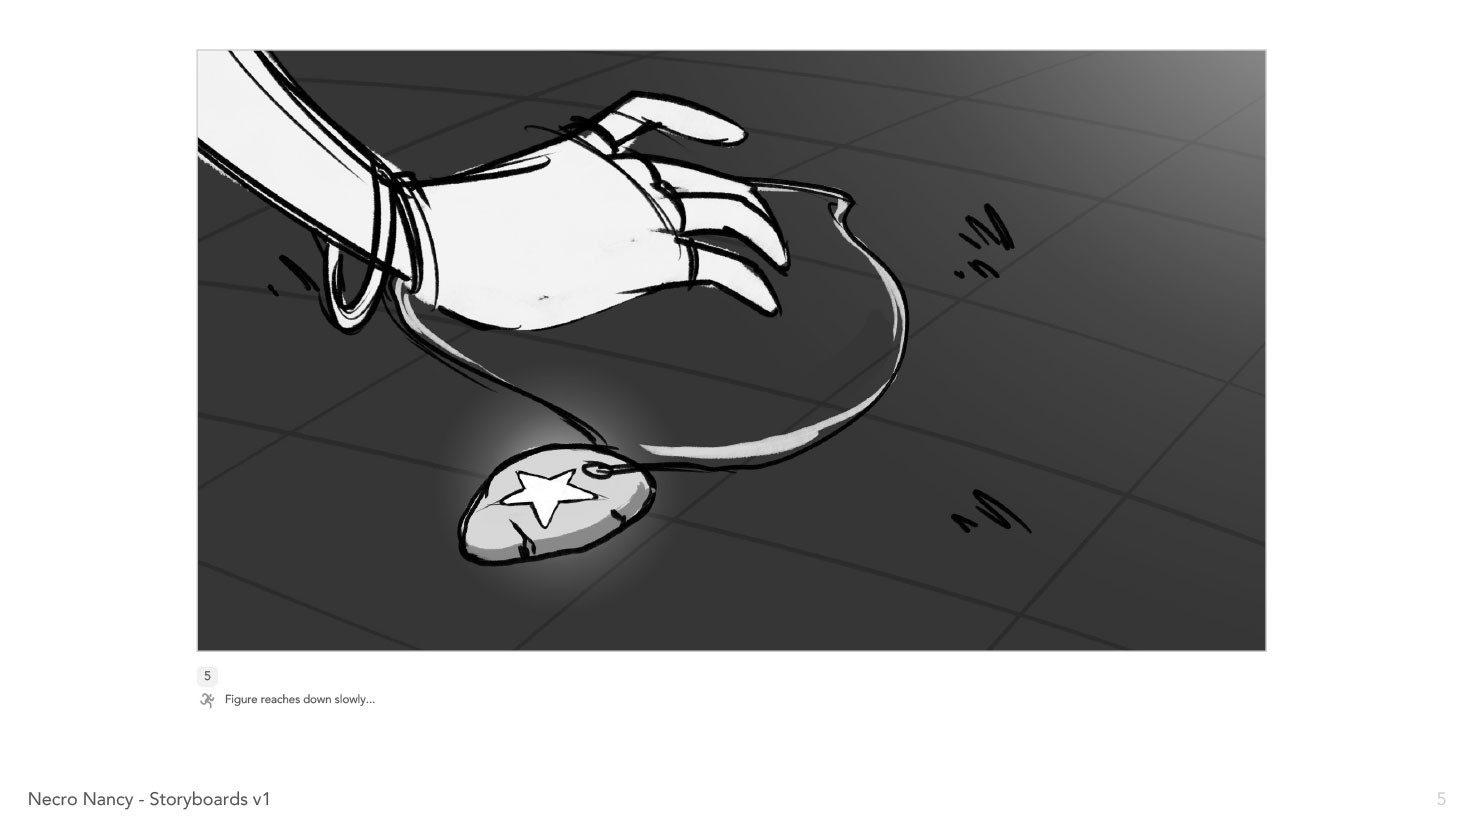 Chx welch necro nancy storyboards 6